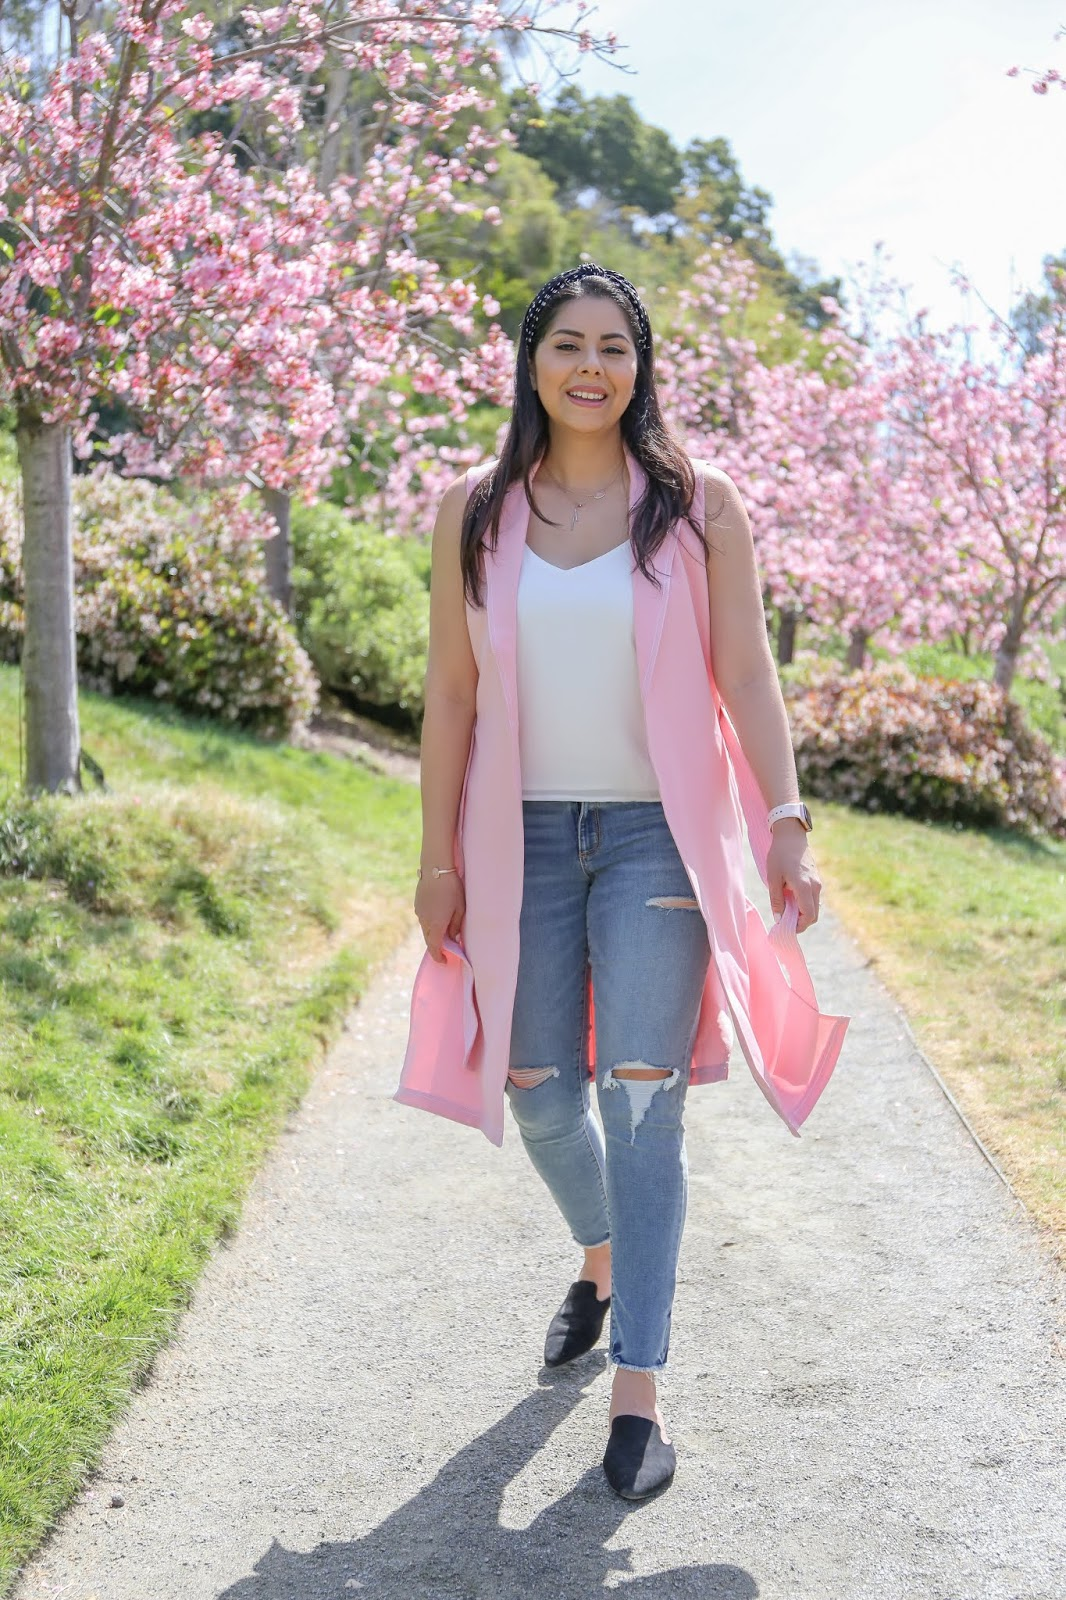 cherry blossom pictures, casual chic pink outfit